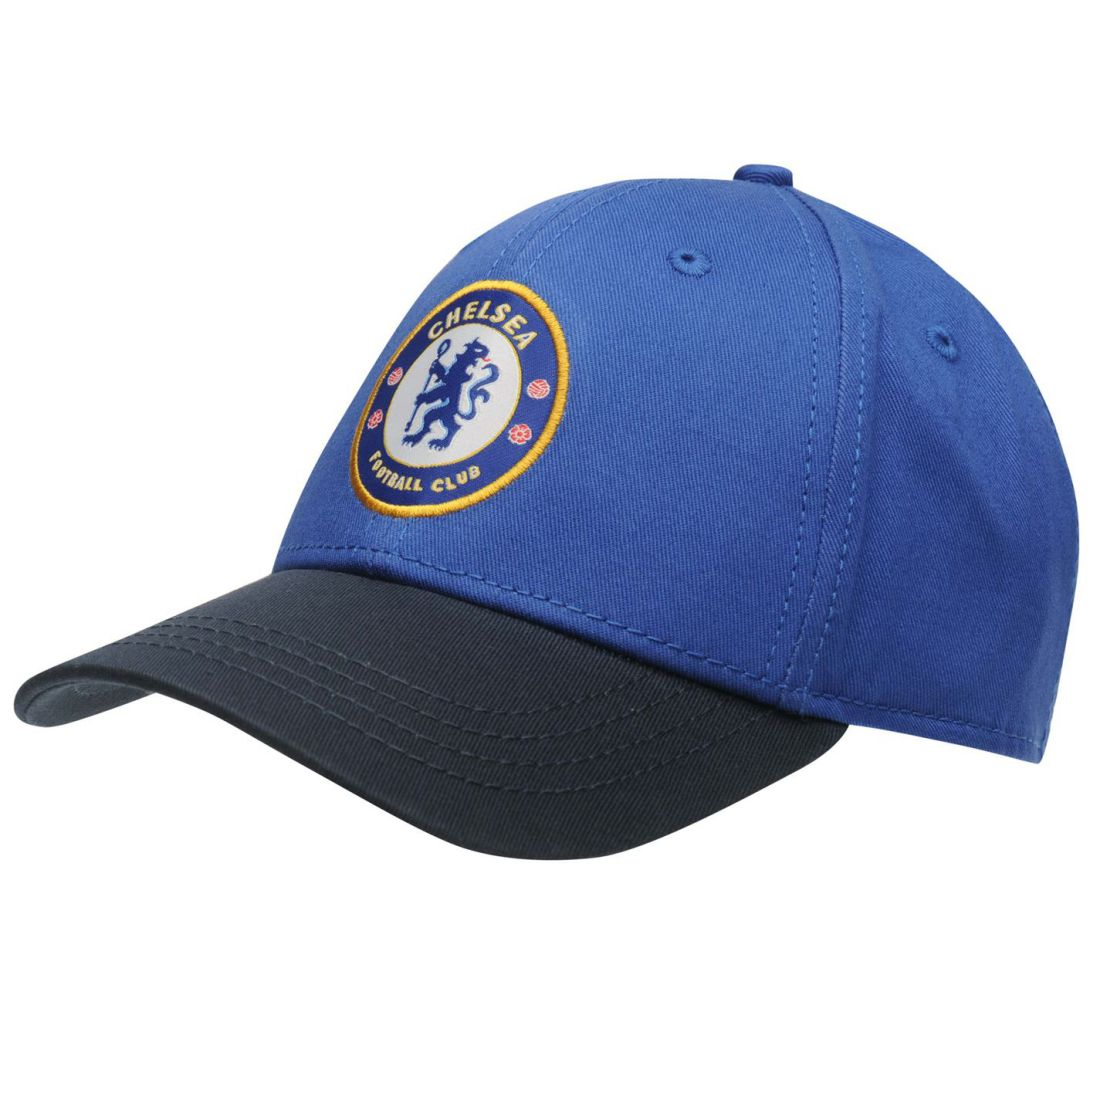 Team Kids Boys BB Cap Juniors Baseball